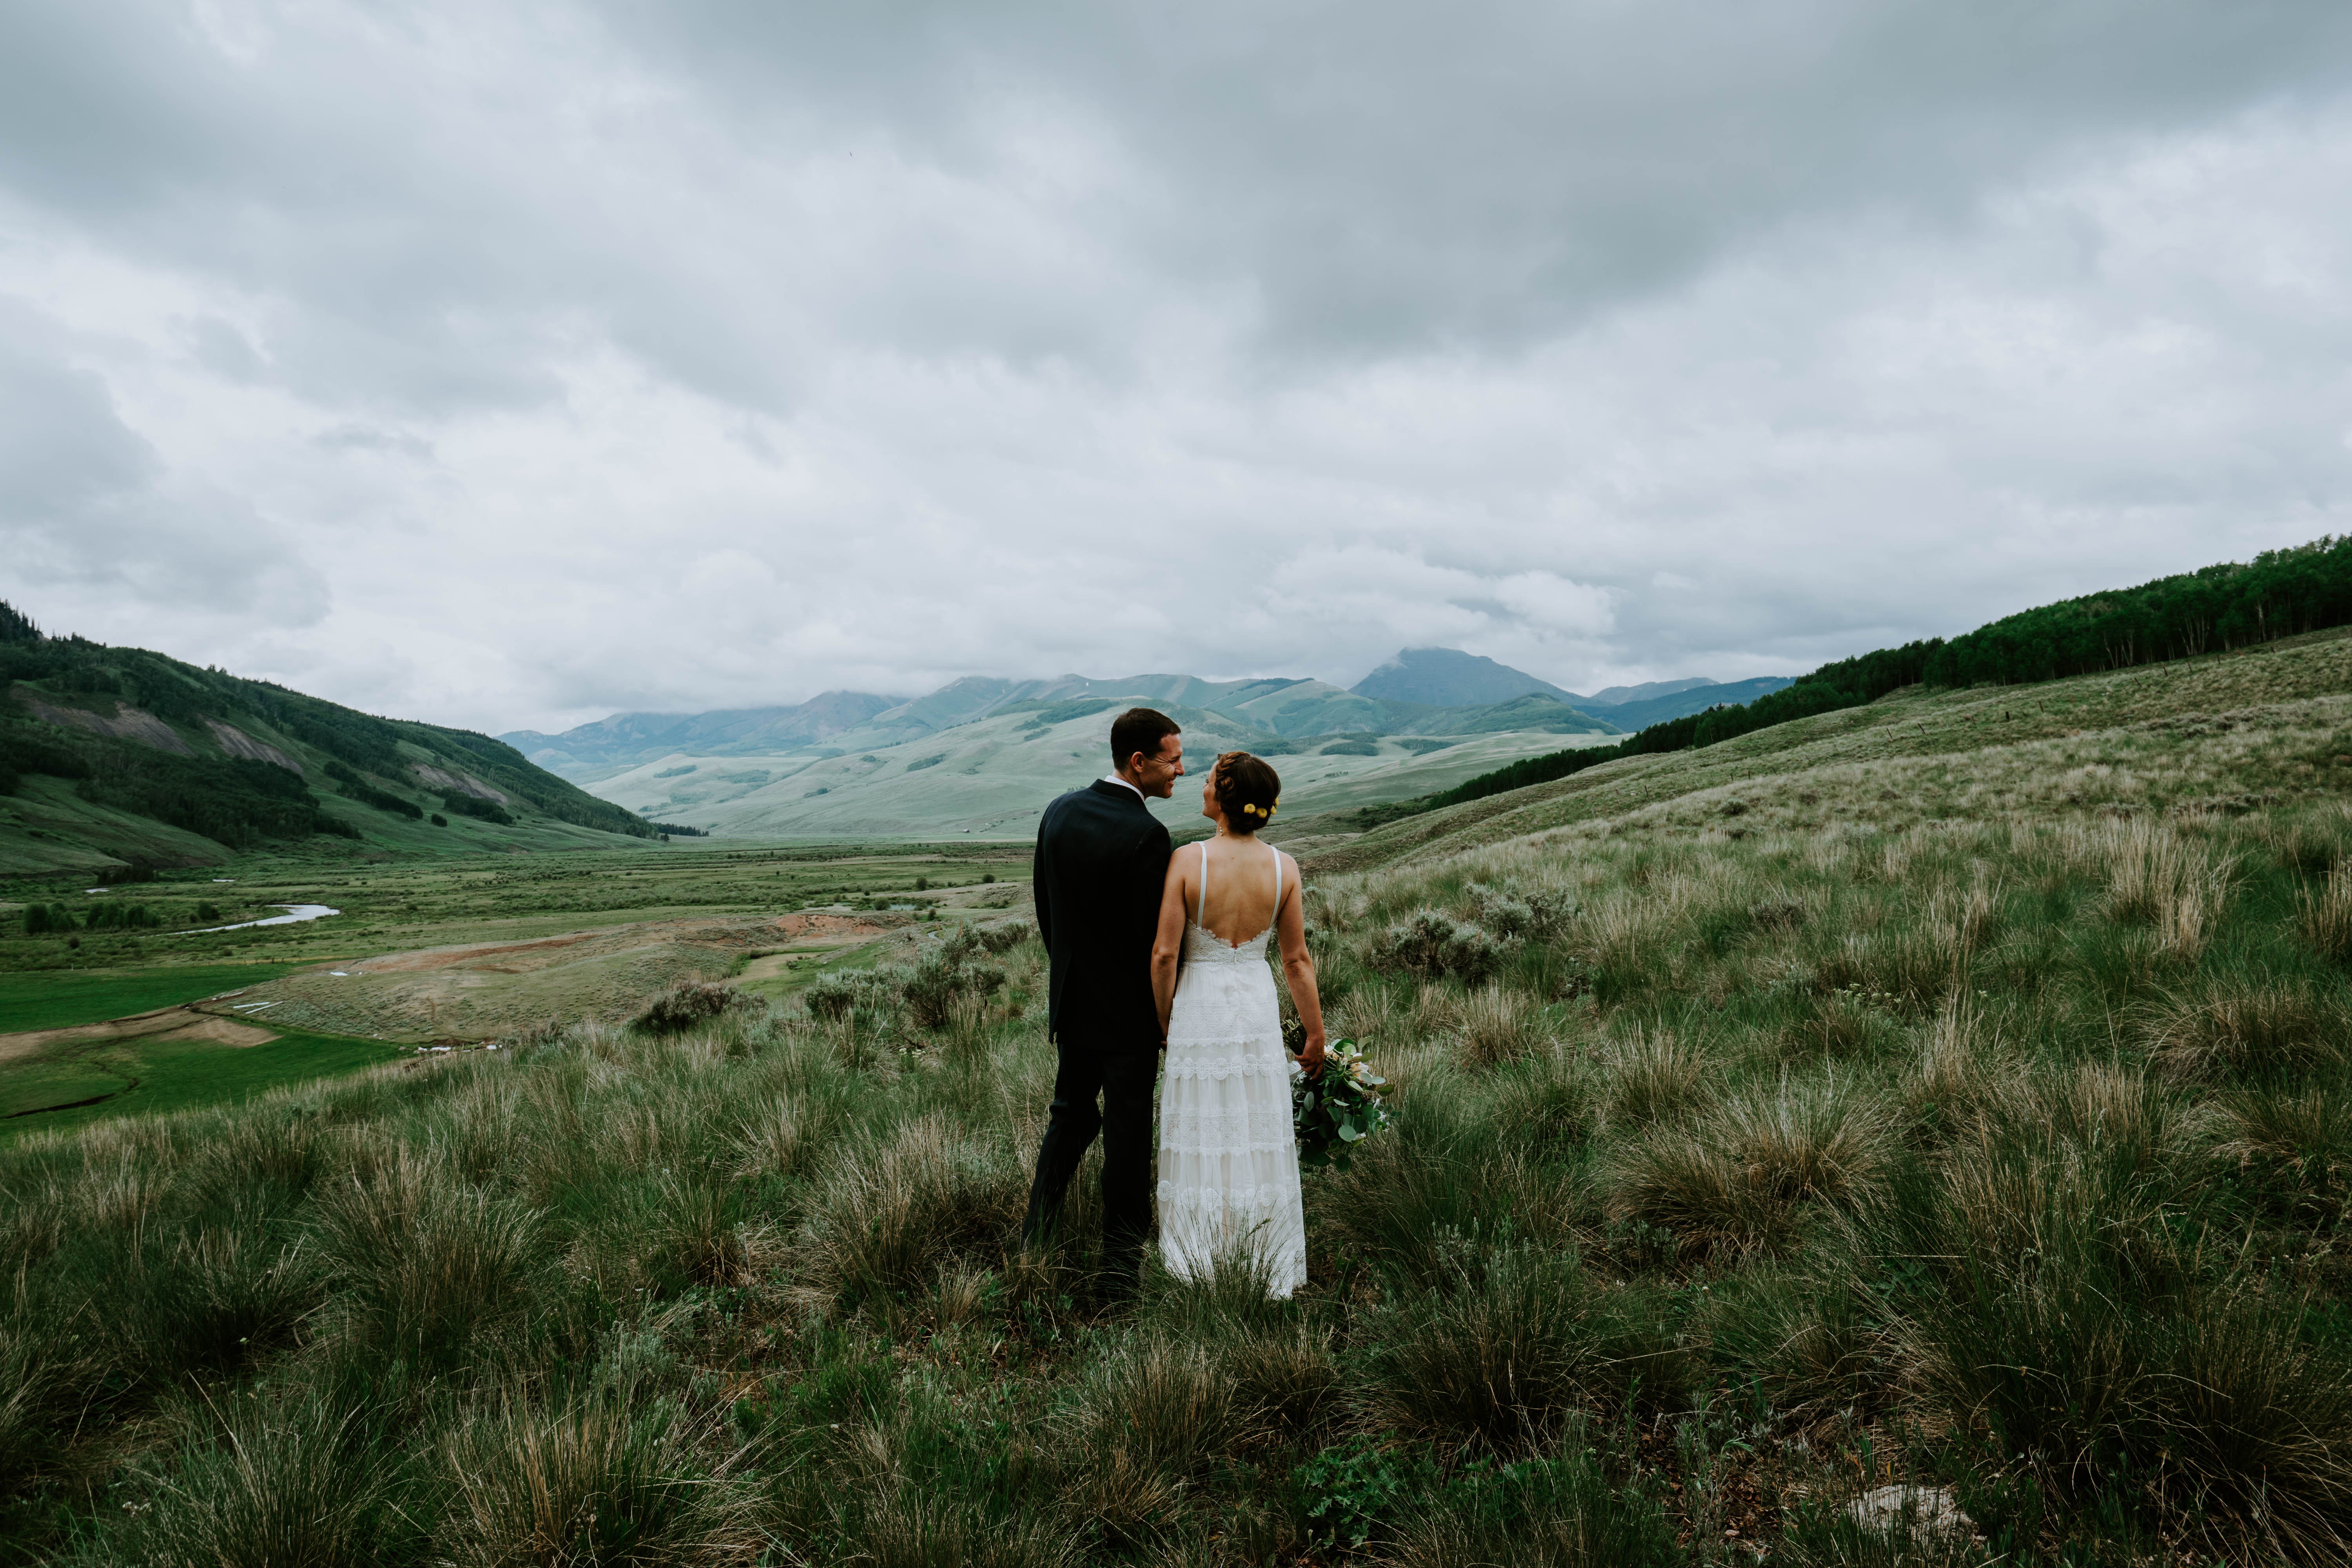 Laura_Alexe_Wedding_Crested_Butte_MegONeillPhotography__180616_41